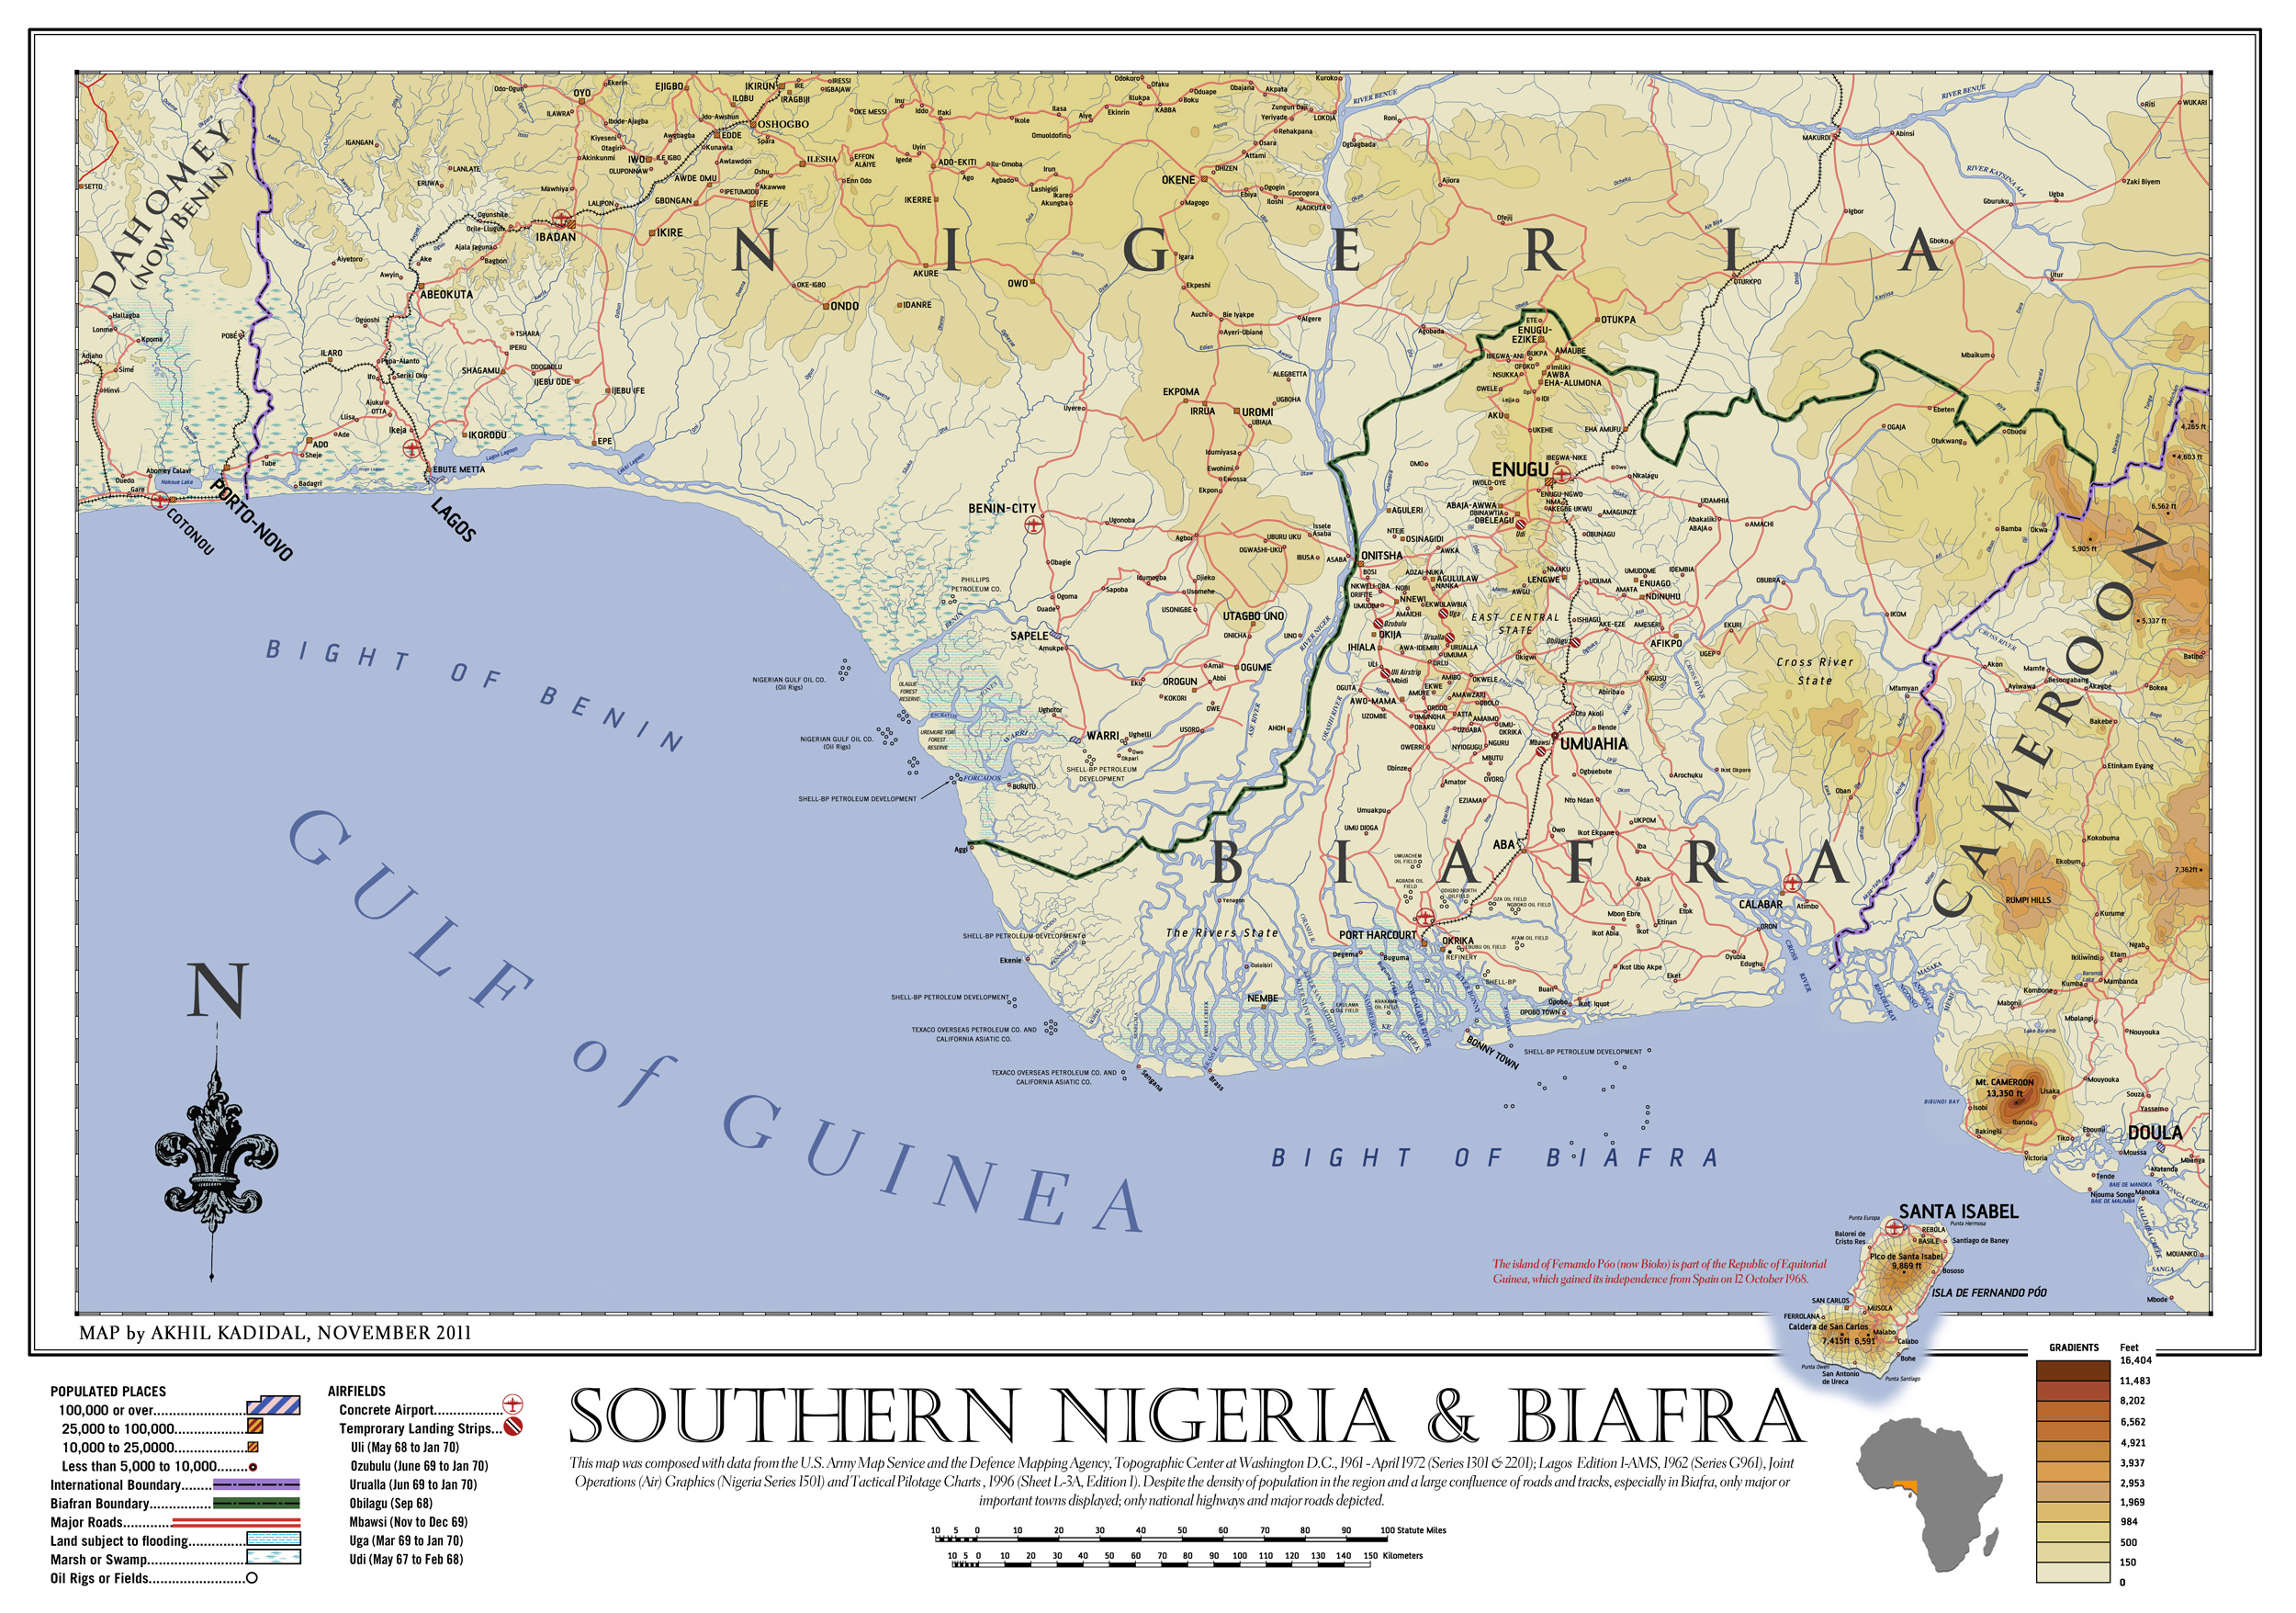 Nature and Impact of Involvement of the Navy in the Nigerian Civil